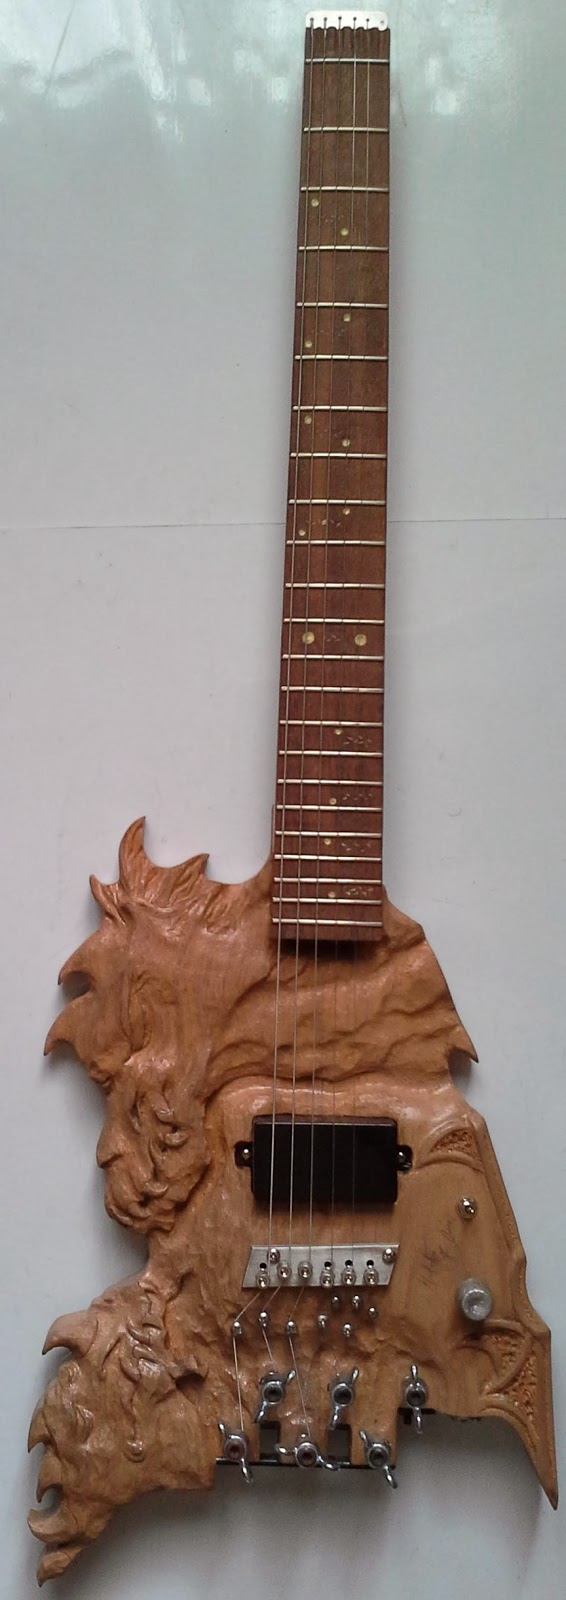 guitarras customizadas, guitarras personalizadas